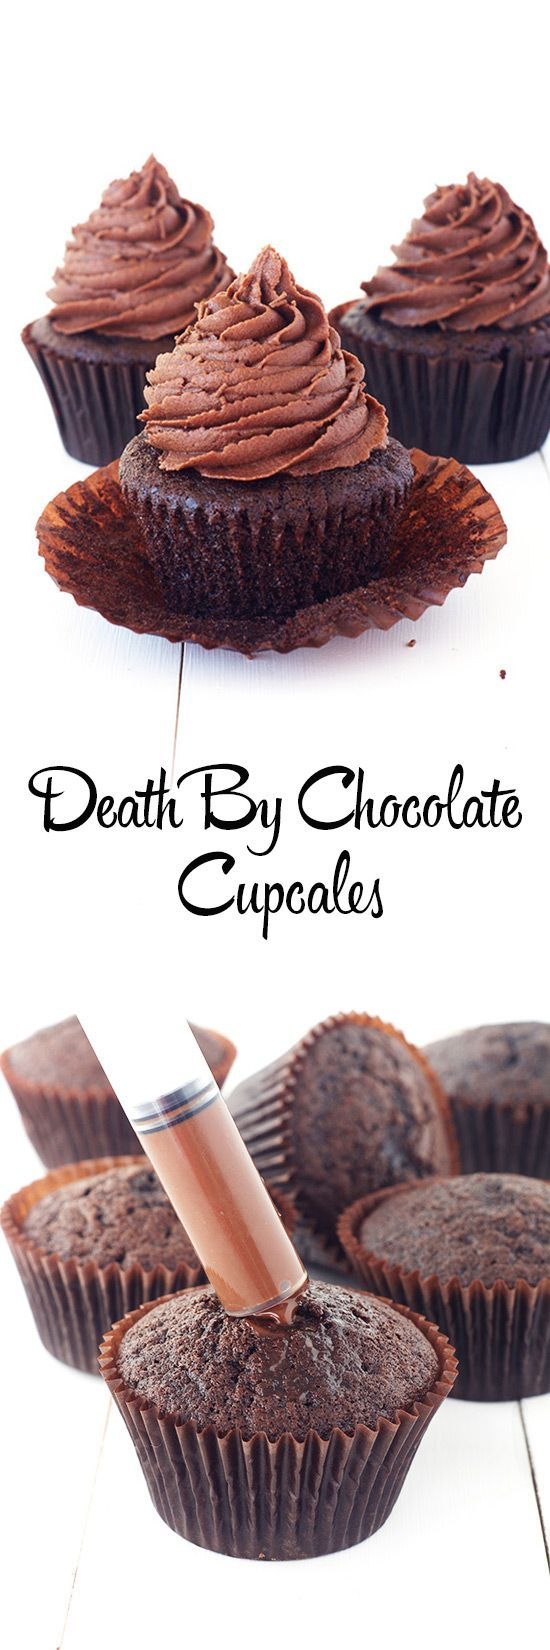 Easy Chocolate Cupcakes filled with chocolate ganache from Sweetest Menu